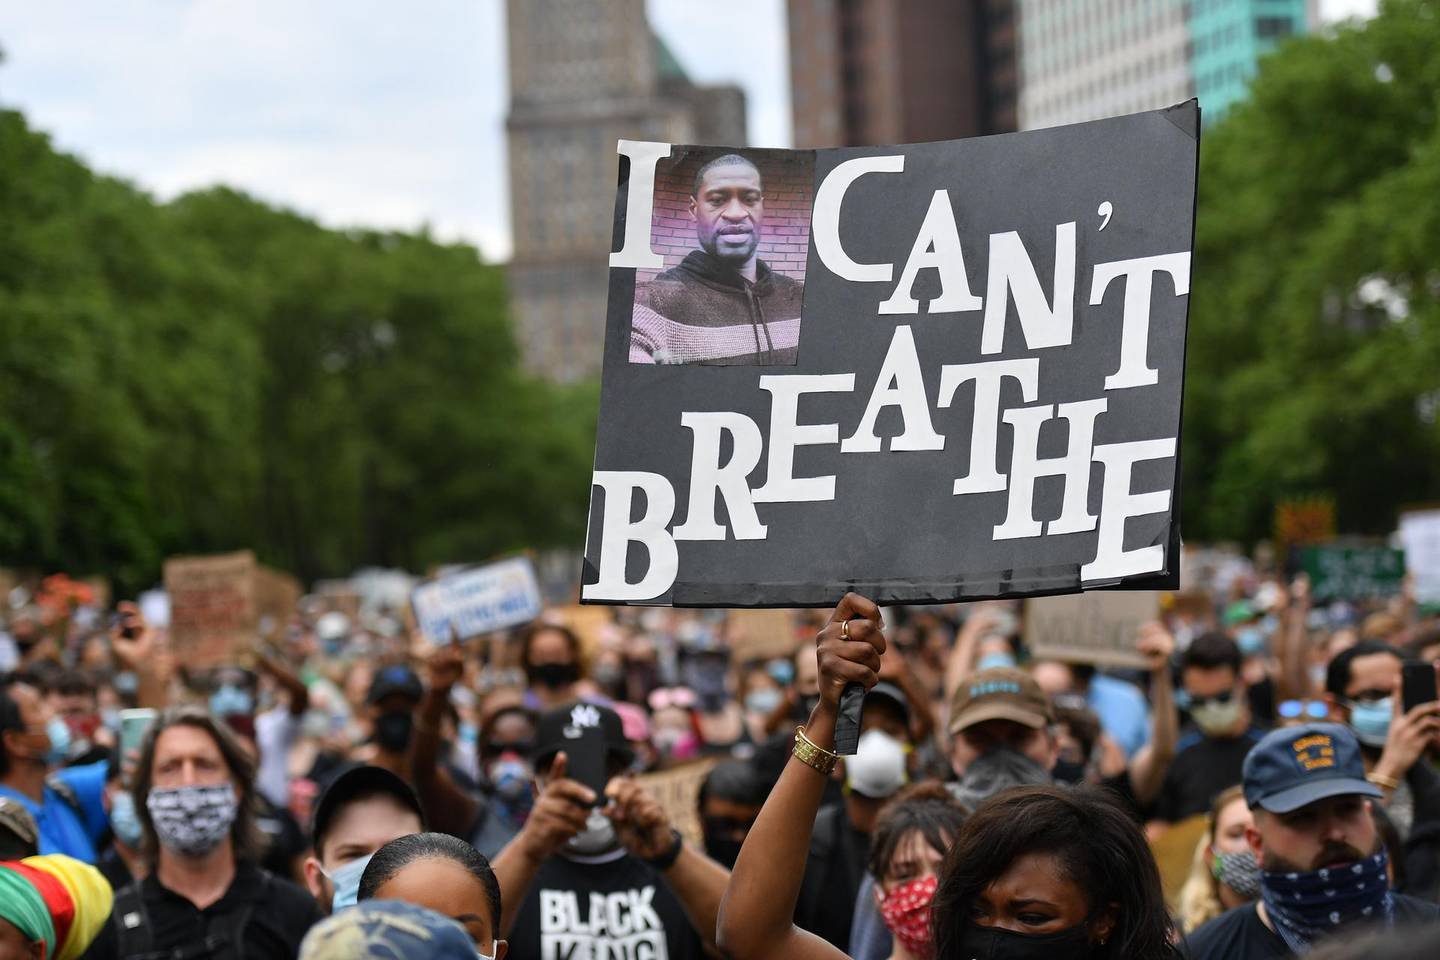 TOPSHOT - Protesters gather to demonstrate the death of George Floyd on June 4, 2020, in New York. On May 25, 2020, Floyd, a 46-year-old black man suspected of passing a counterfeit $20 bill, died in Minneapolis after Derek Chauvin, a white police officer, pressed his knee to Floyd's neck for almost nine minutes. / AFP / ANGELA WEISS